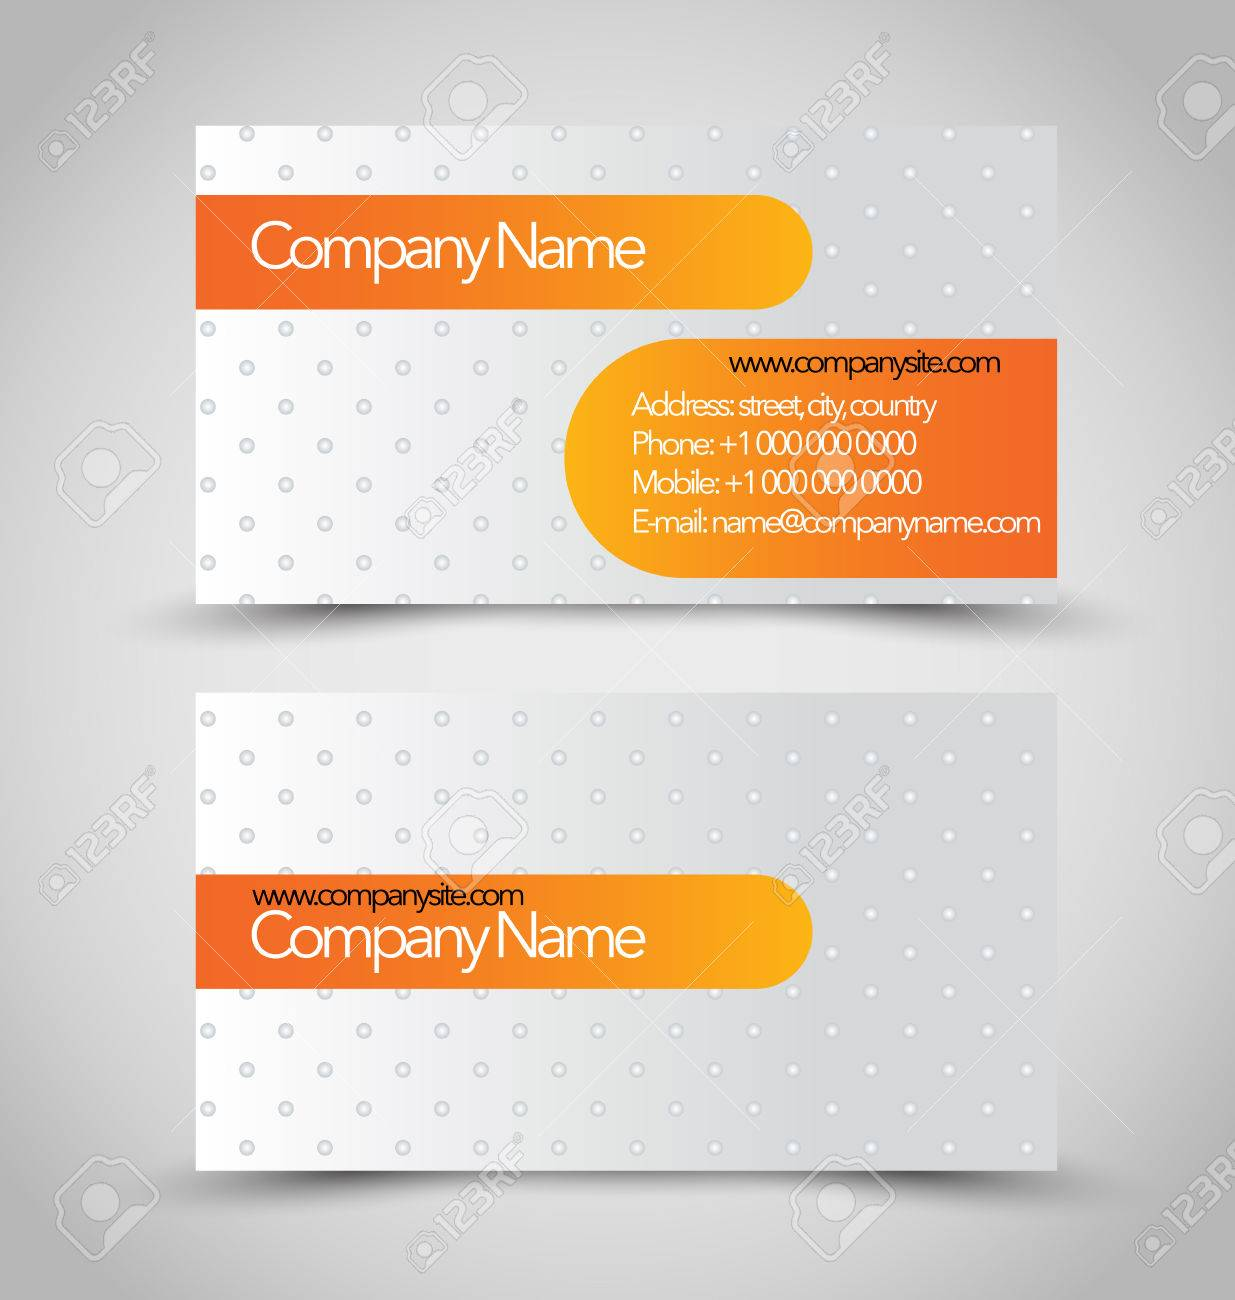 Carte De Visite Mis Modele Orange Et La Couleur Gris Argent Vector